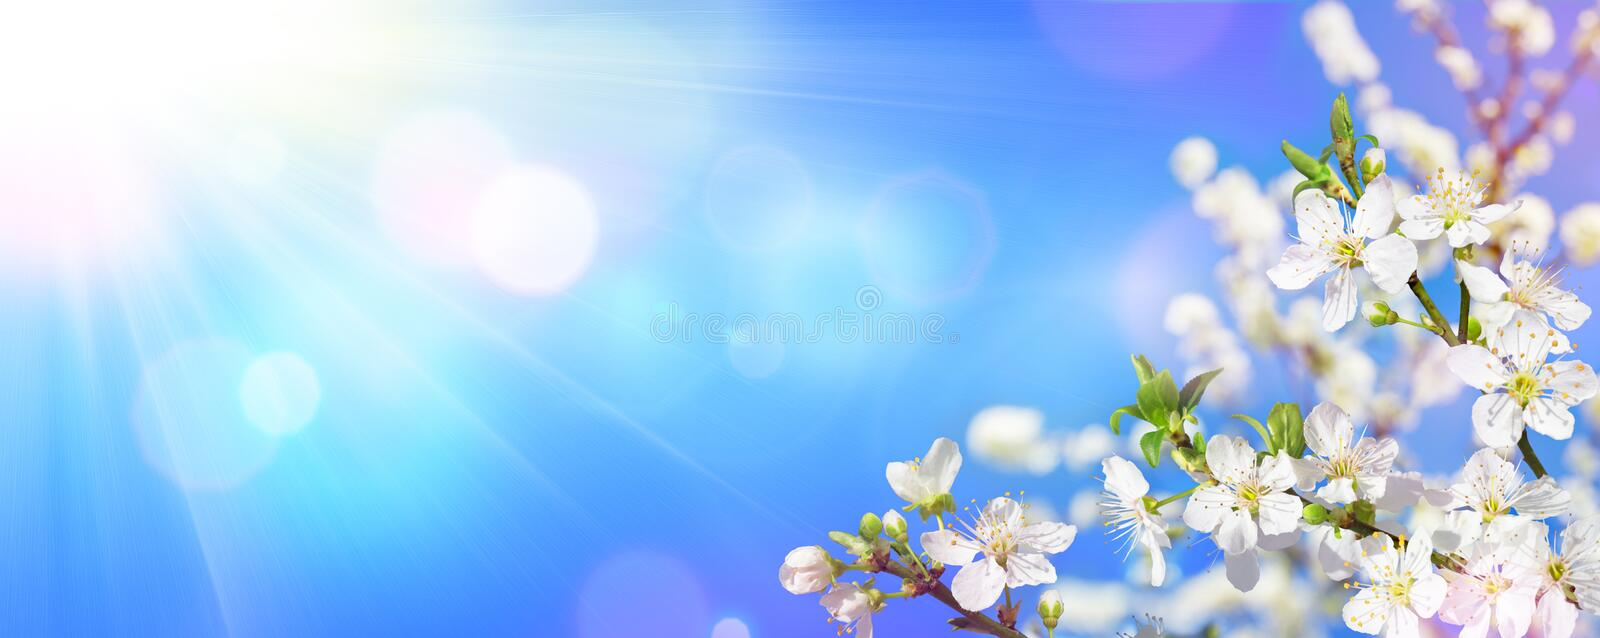 Spring Blooming - Sunlight On Almond Blooms stock photography